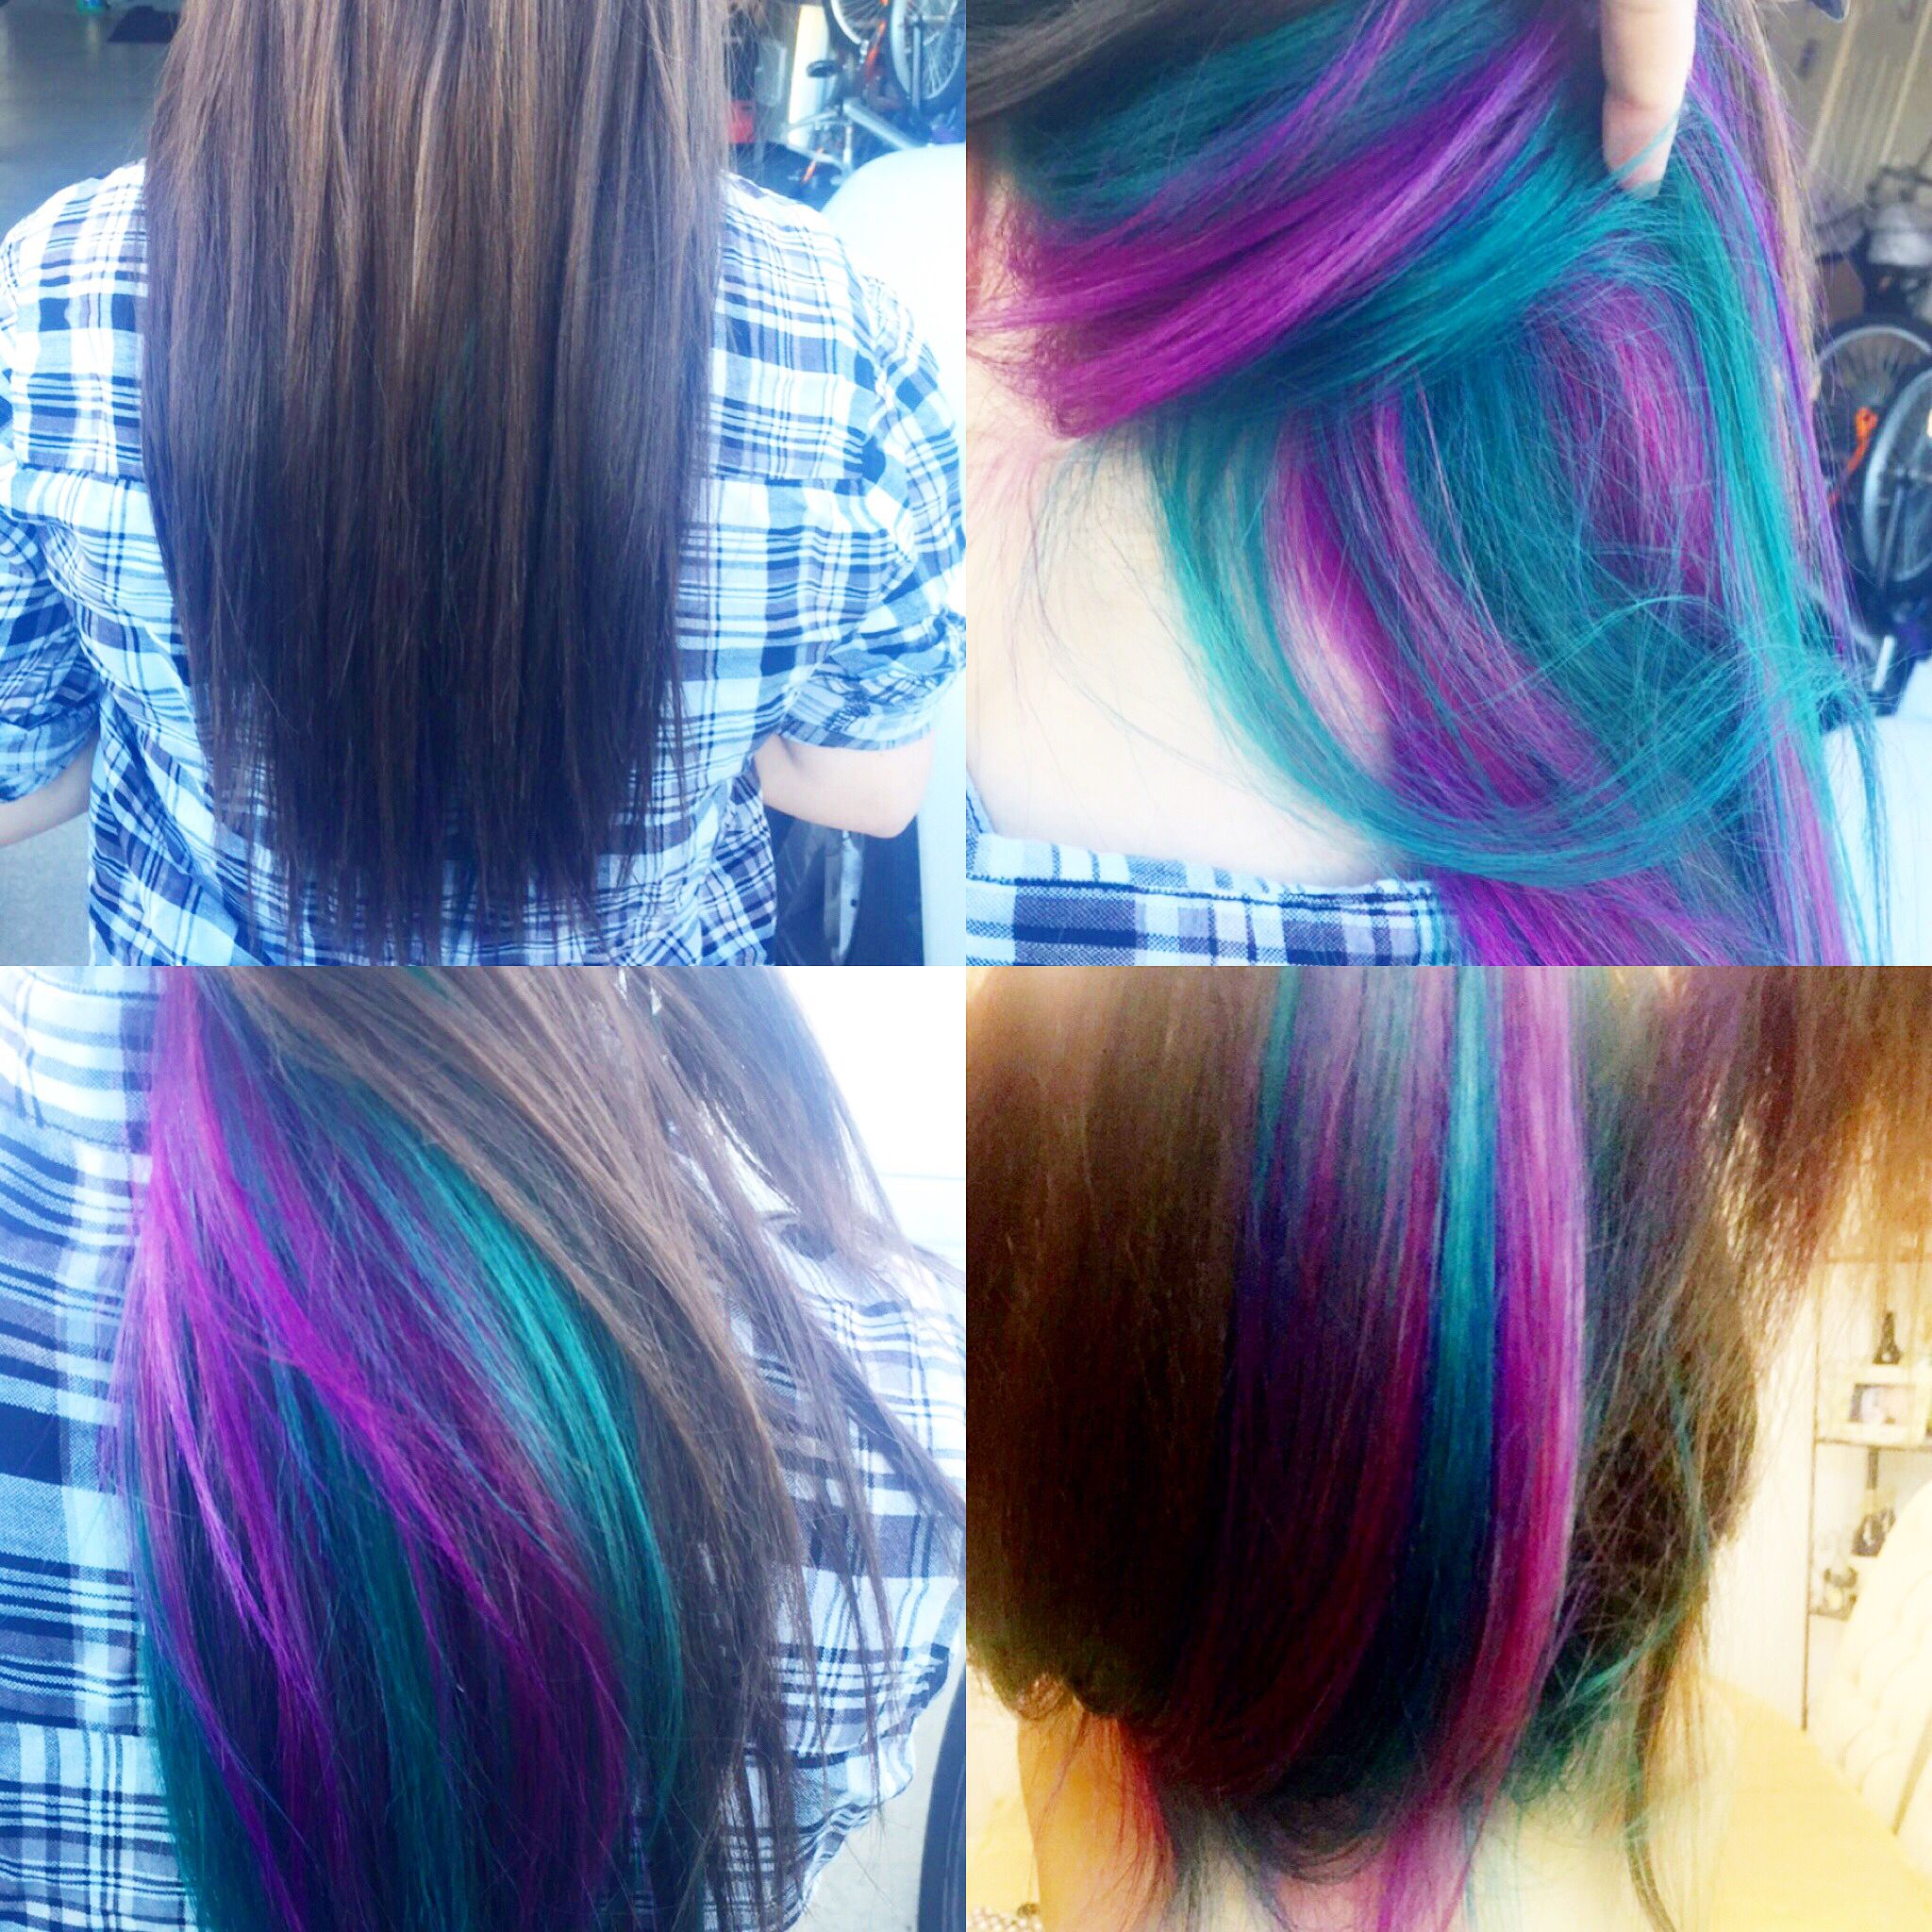 Peek a boo underneath purple and teal accent highlights cant see trendy hair highlights picture description peek a boo underneath purple and teal accent highlights cant see the color unless the hair is moved or pulled pmusecretfo Images